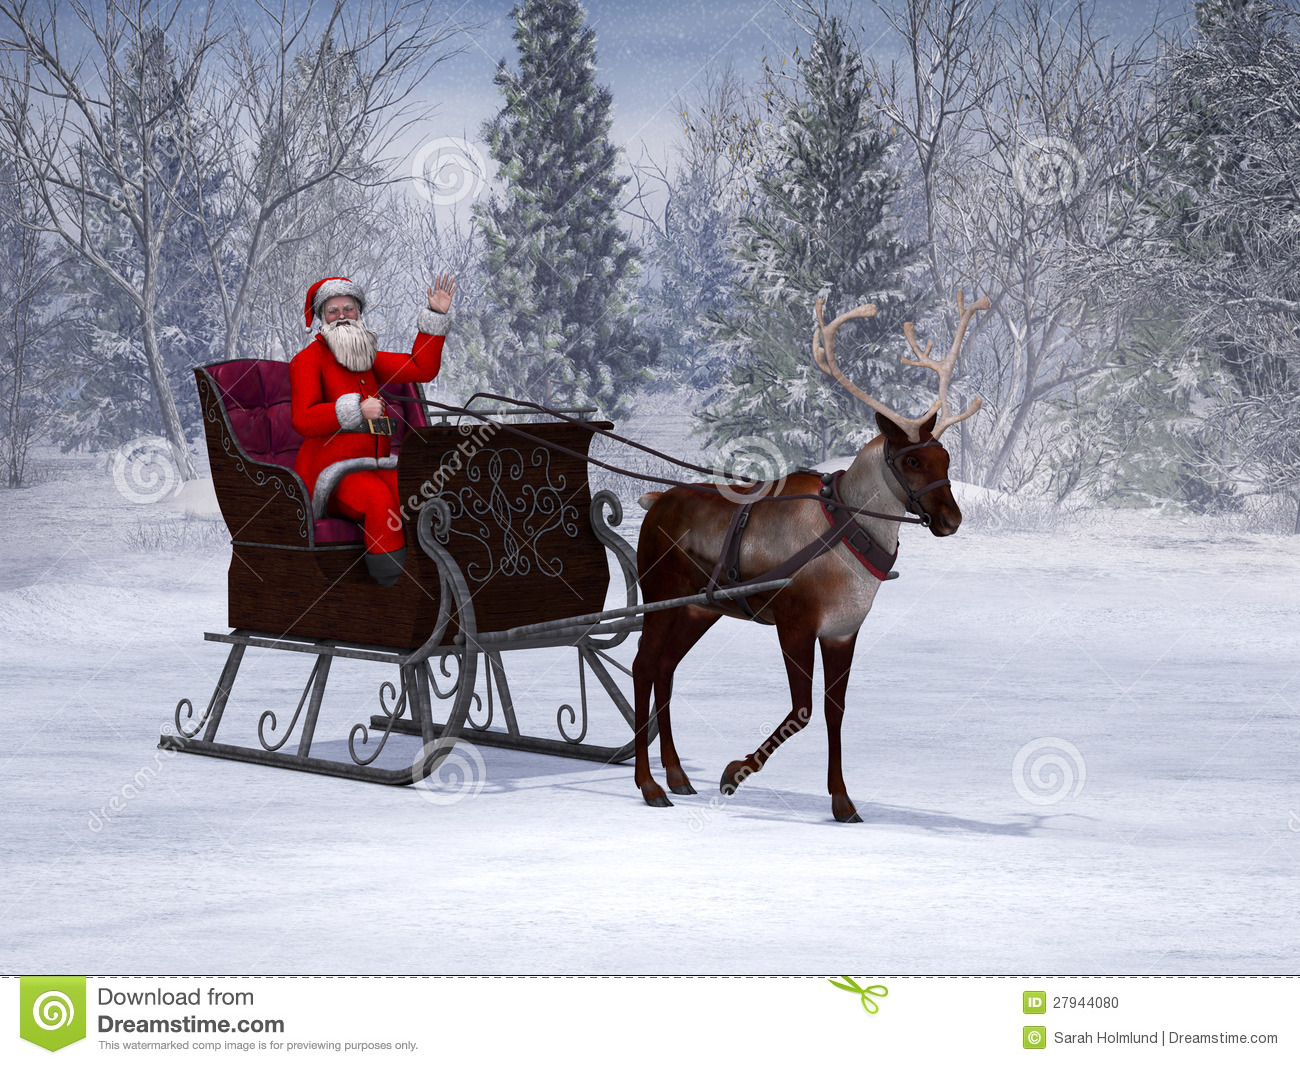 Santa Claus 3d Live Wallpaper And Screensaver Reindeer Pulling A Sleigh With Waving Santa Claus Stock